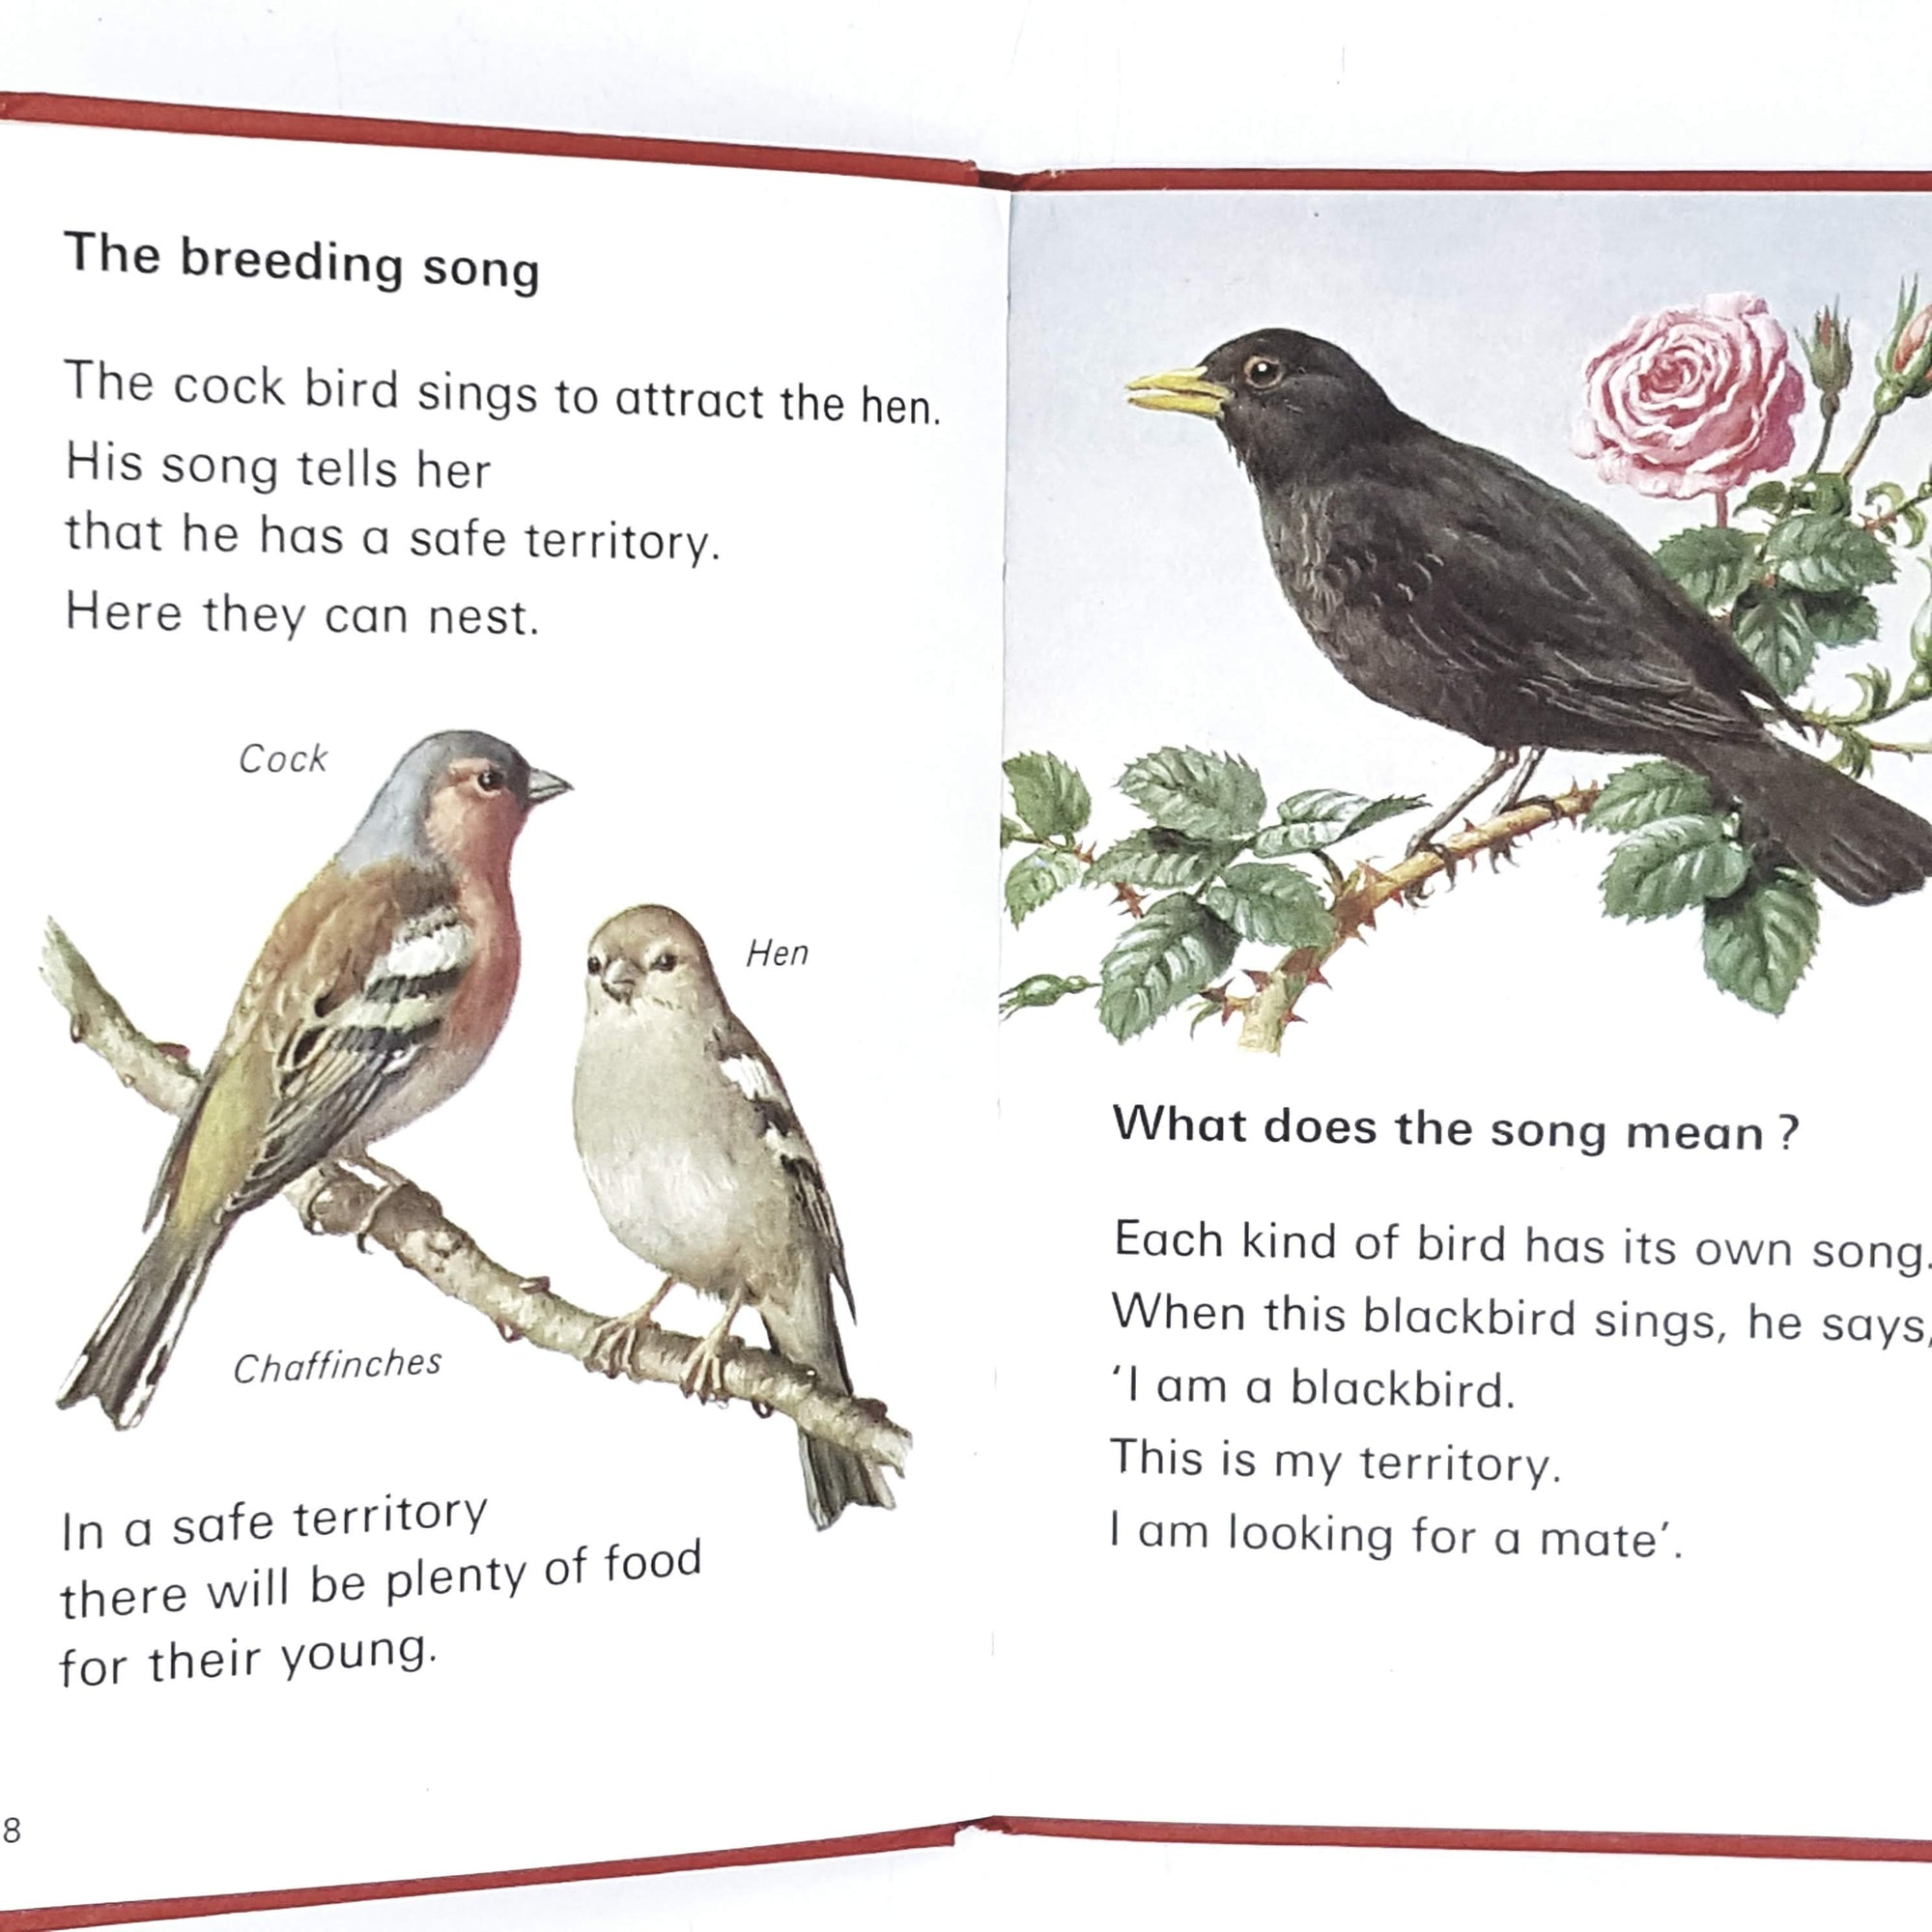 ladybird-leaders-song-bird-1974-country-house-library